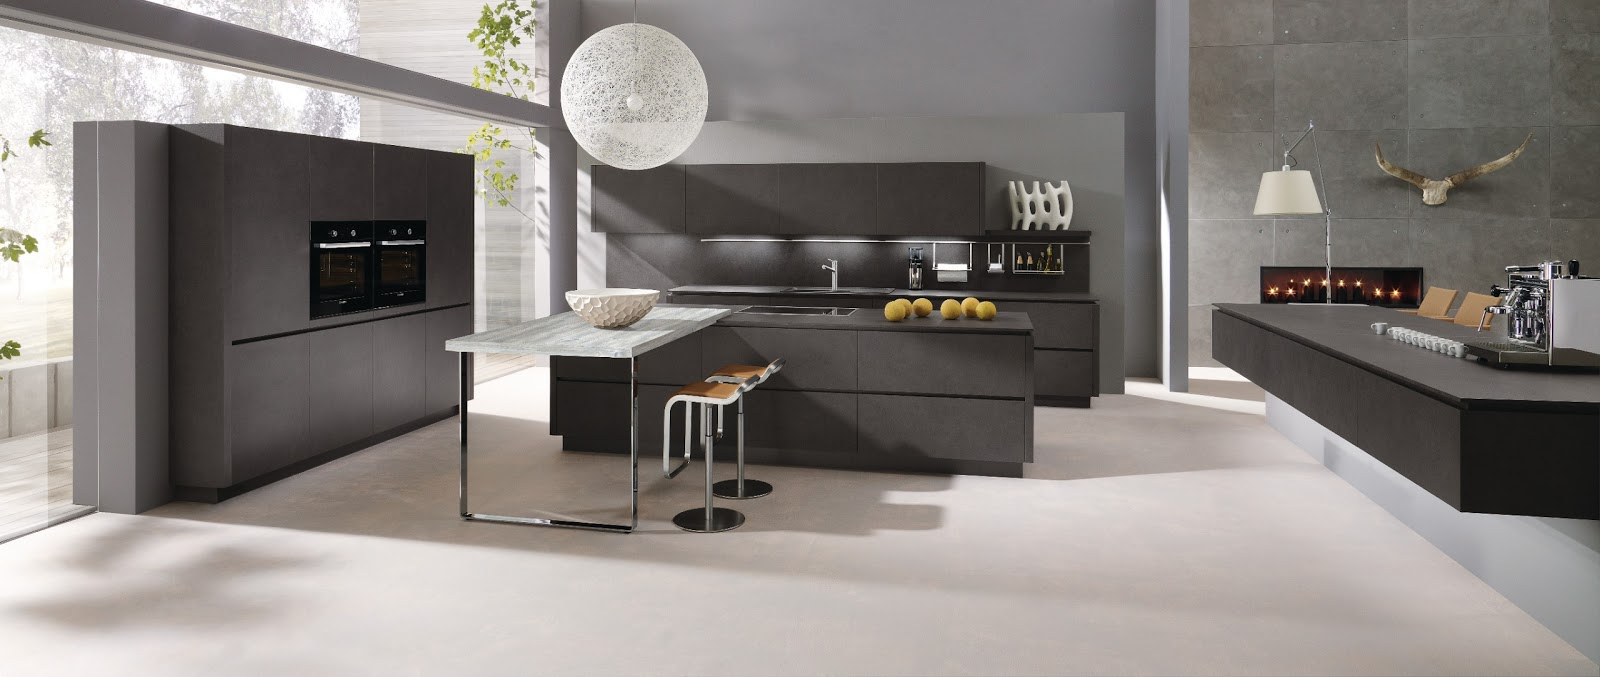 Cuisine design anthracite avec lot for Cuisine design grise